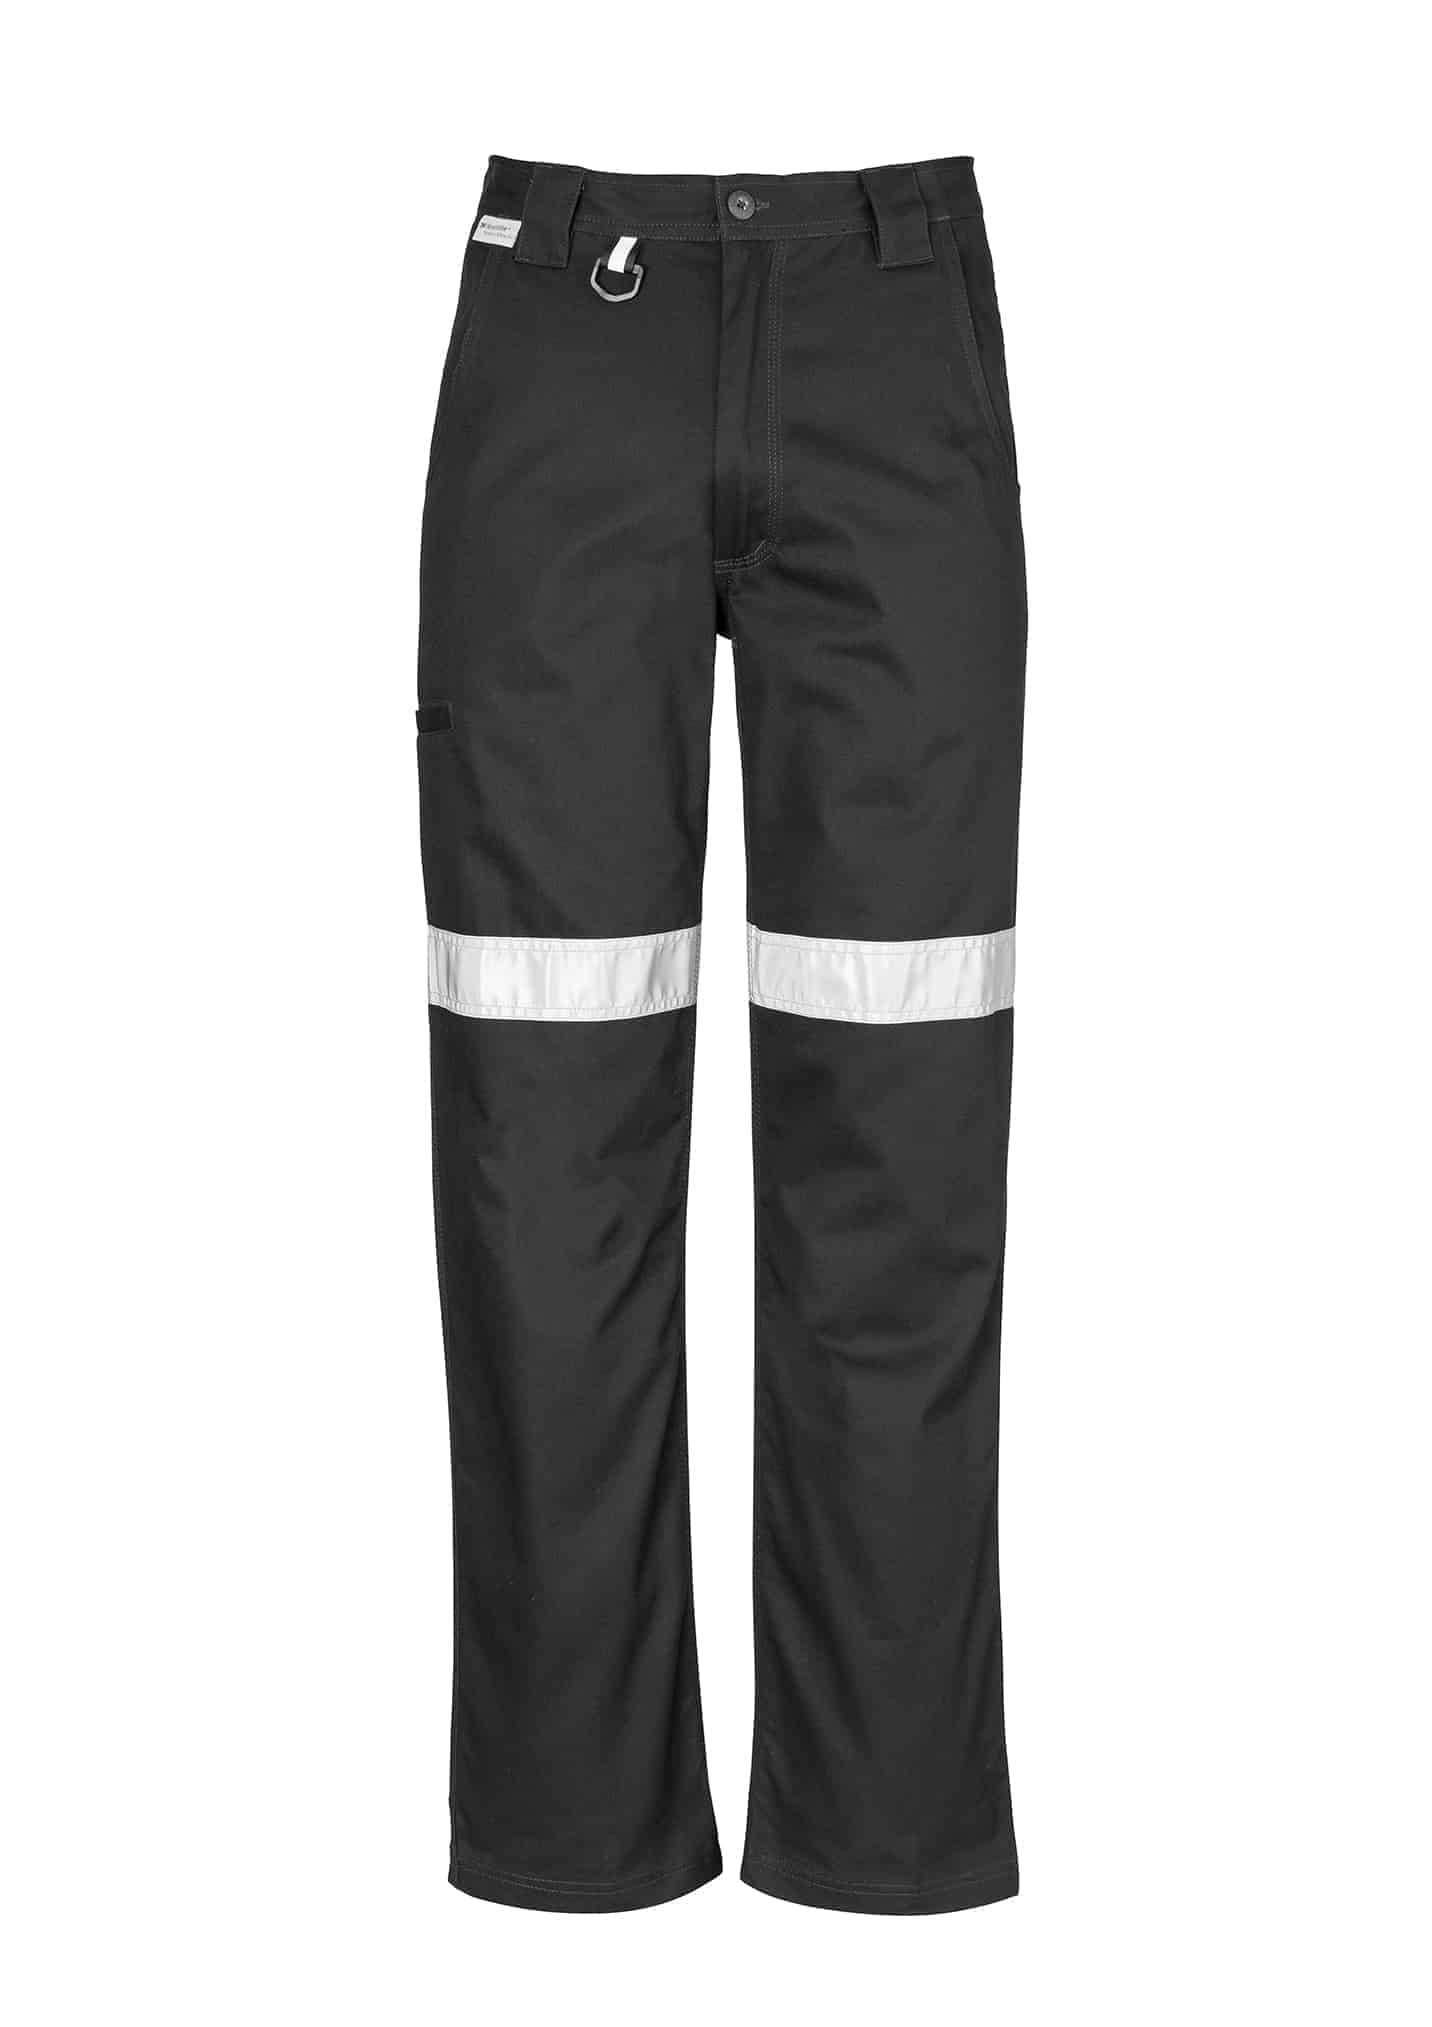 Mens Taped Utility Pant